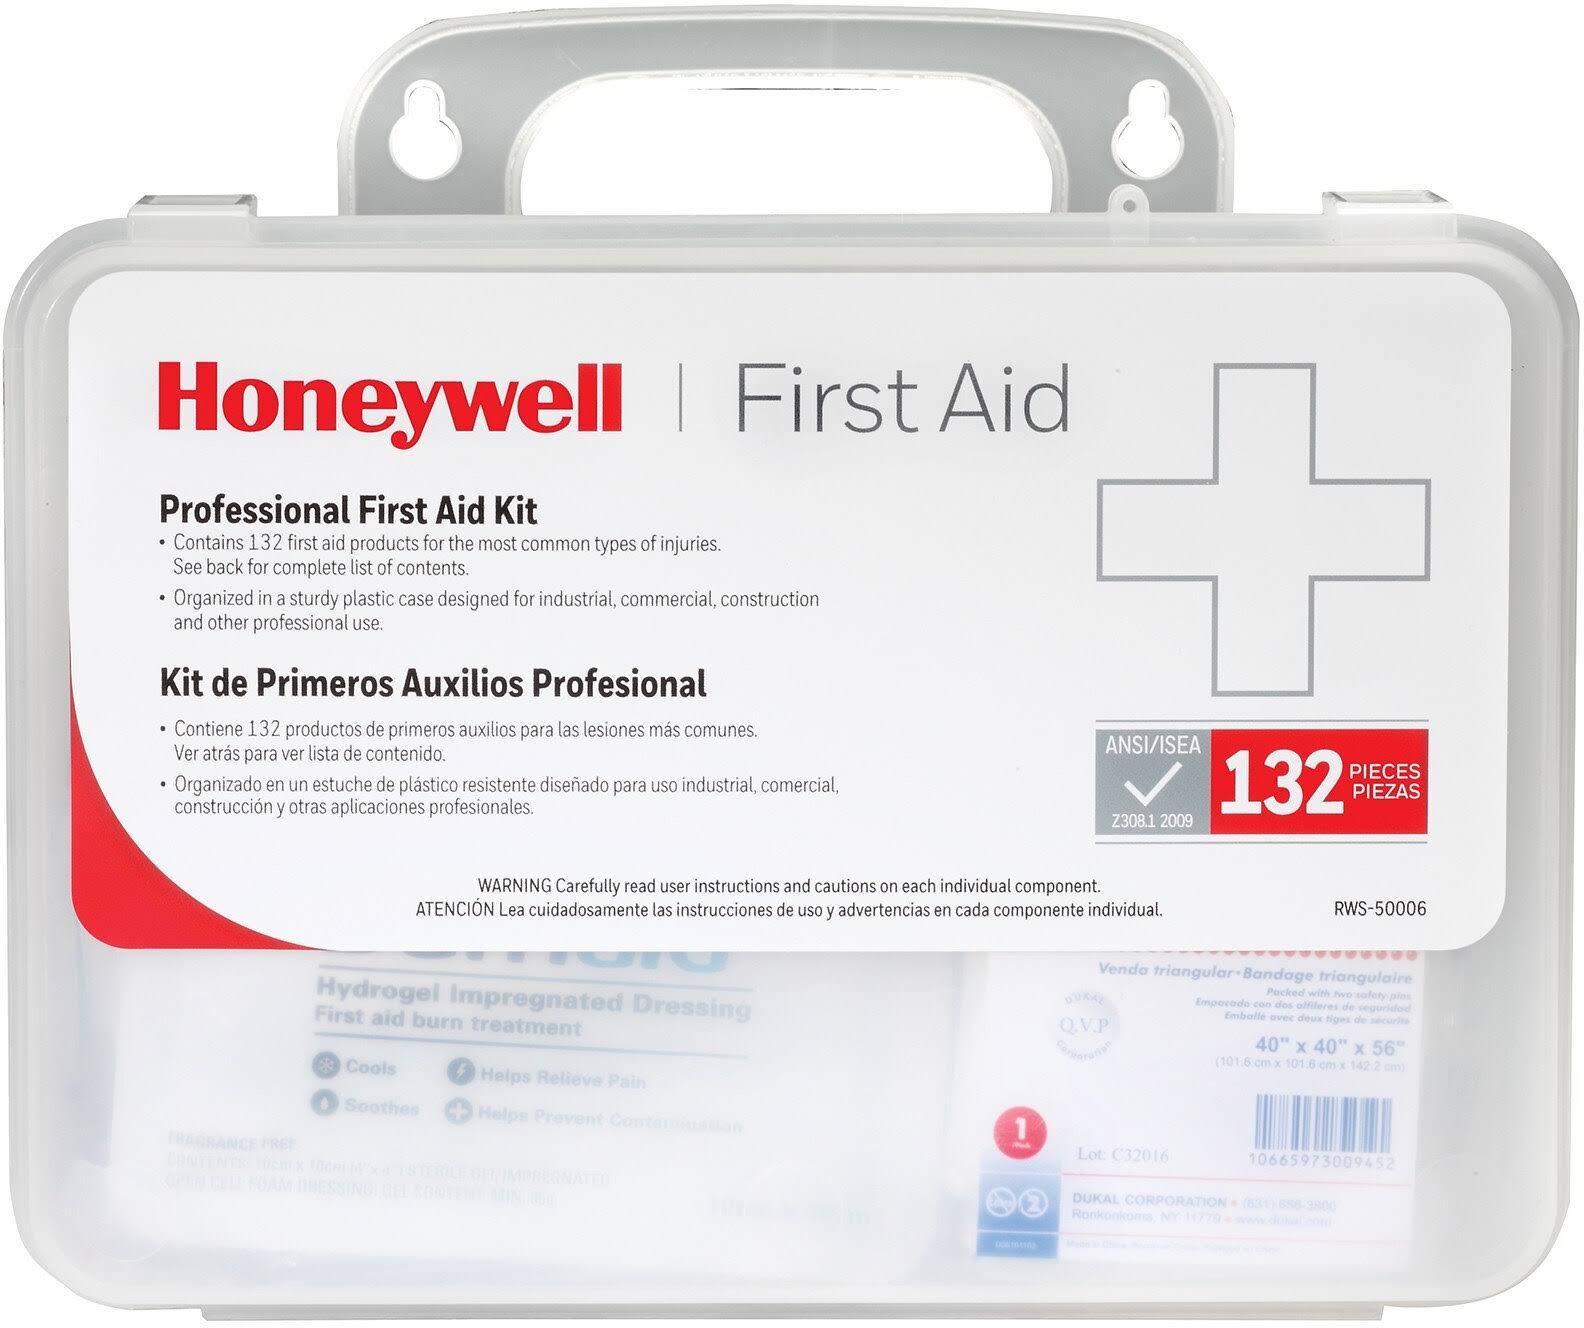 Honeywell First Aid Kit, Professional - 132 first aid kit